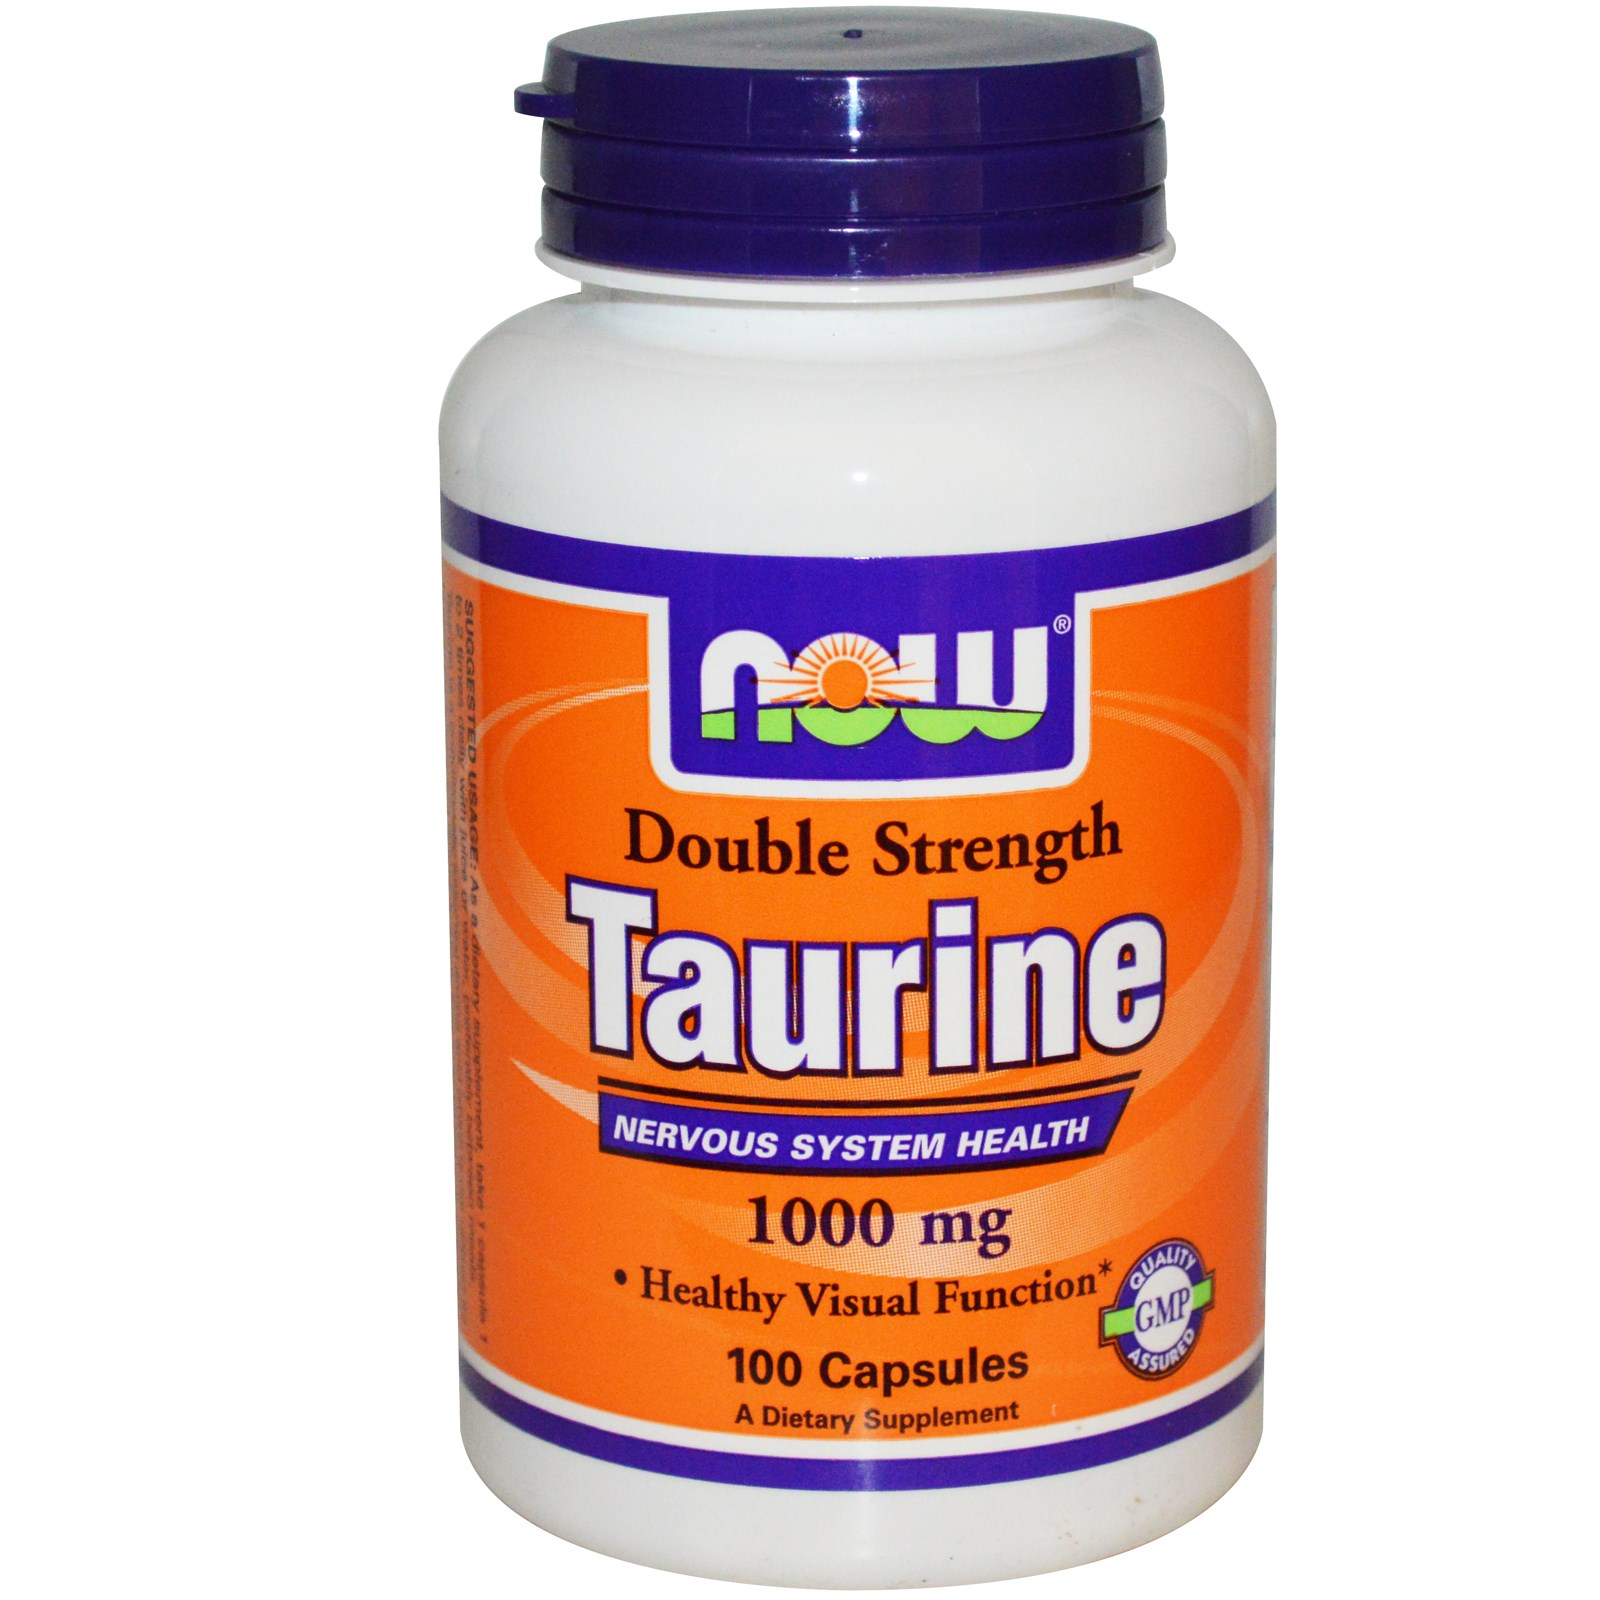 Image of Taurine Double Strength 1000 mg (100 Capsules) - Now Foods 0733739001429